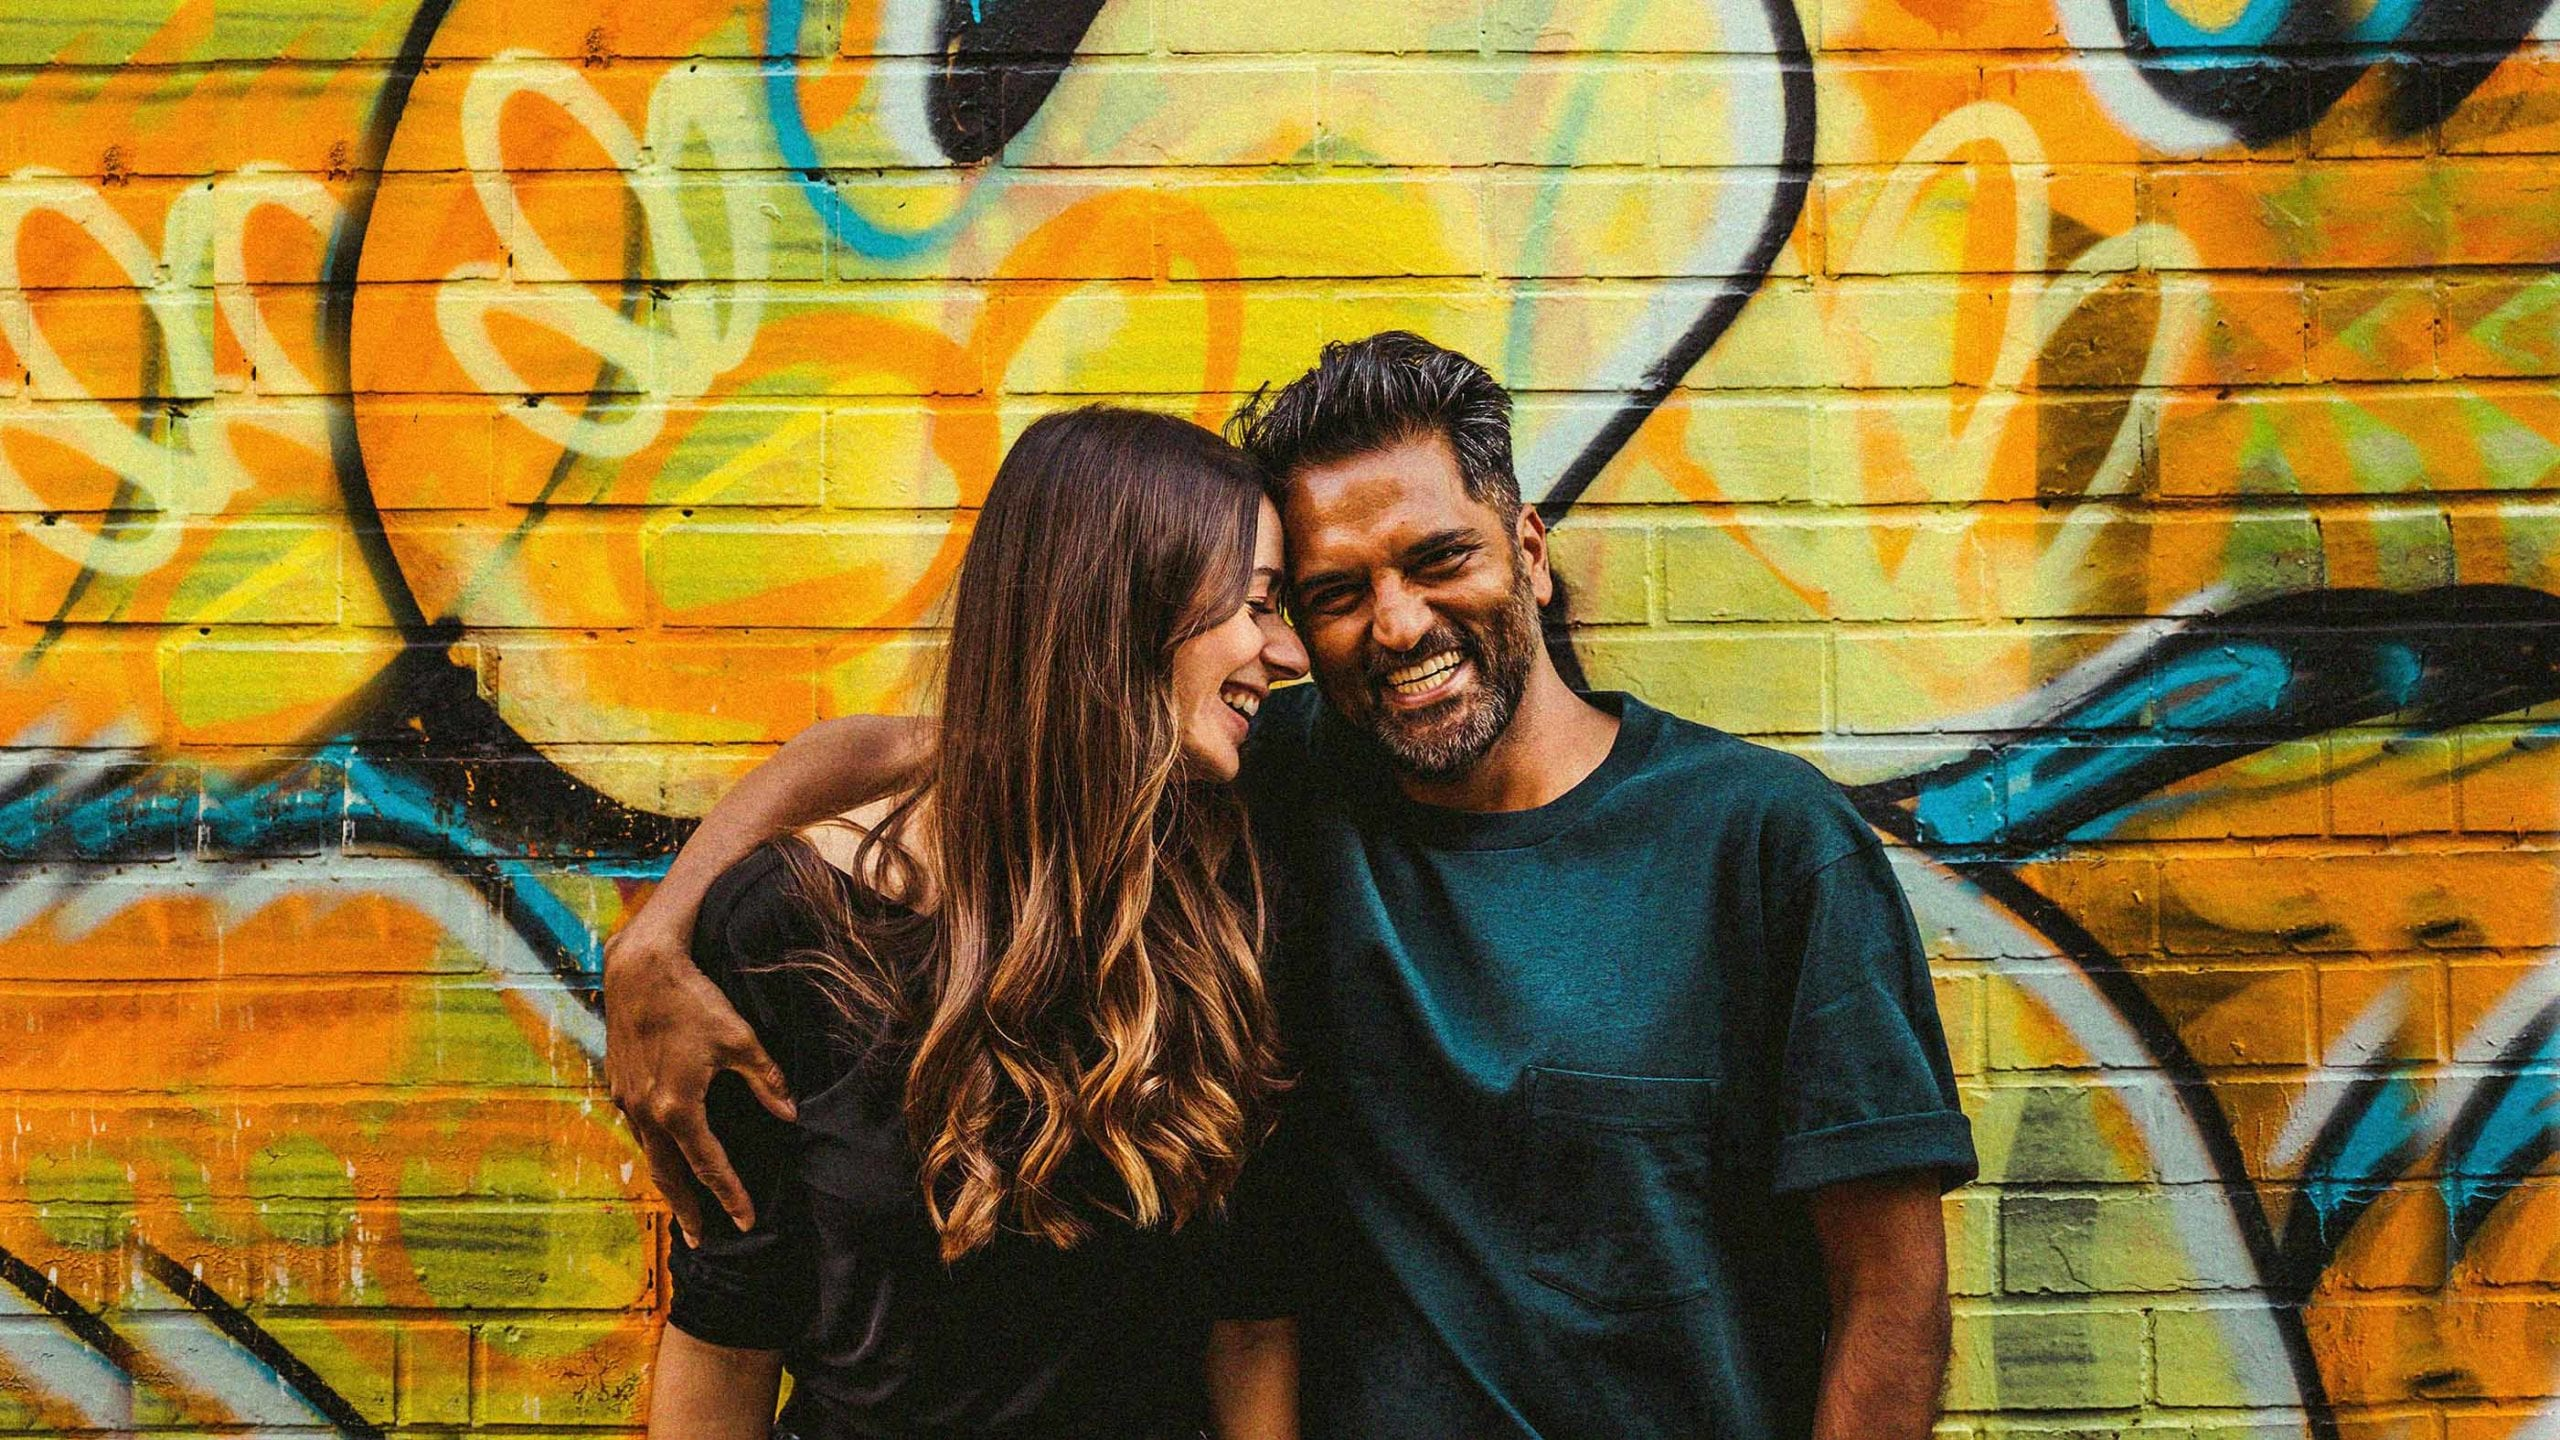 A man and lady stand in front of a multi coloured wall and pose for a photograph as the lady places her forehead onto the side of the man's head